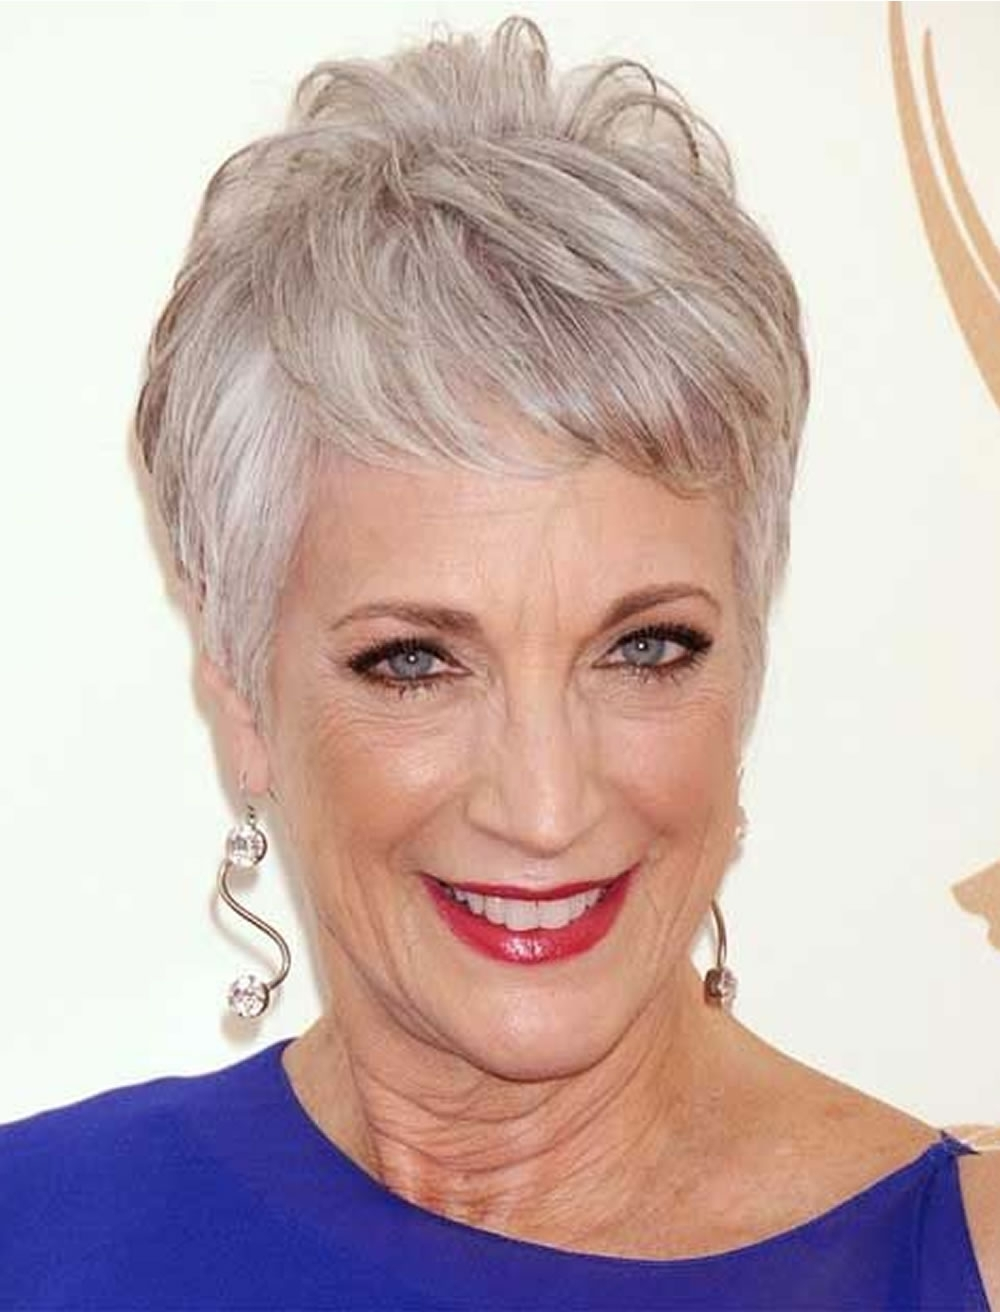 33 Top Pixie Hairstyles For Older Women | Short Pixie Haircuts For Throughout Latest Gray Hair Pixie Hairstyles (View 9 of 15)